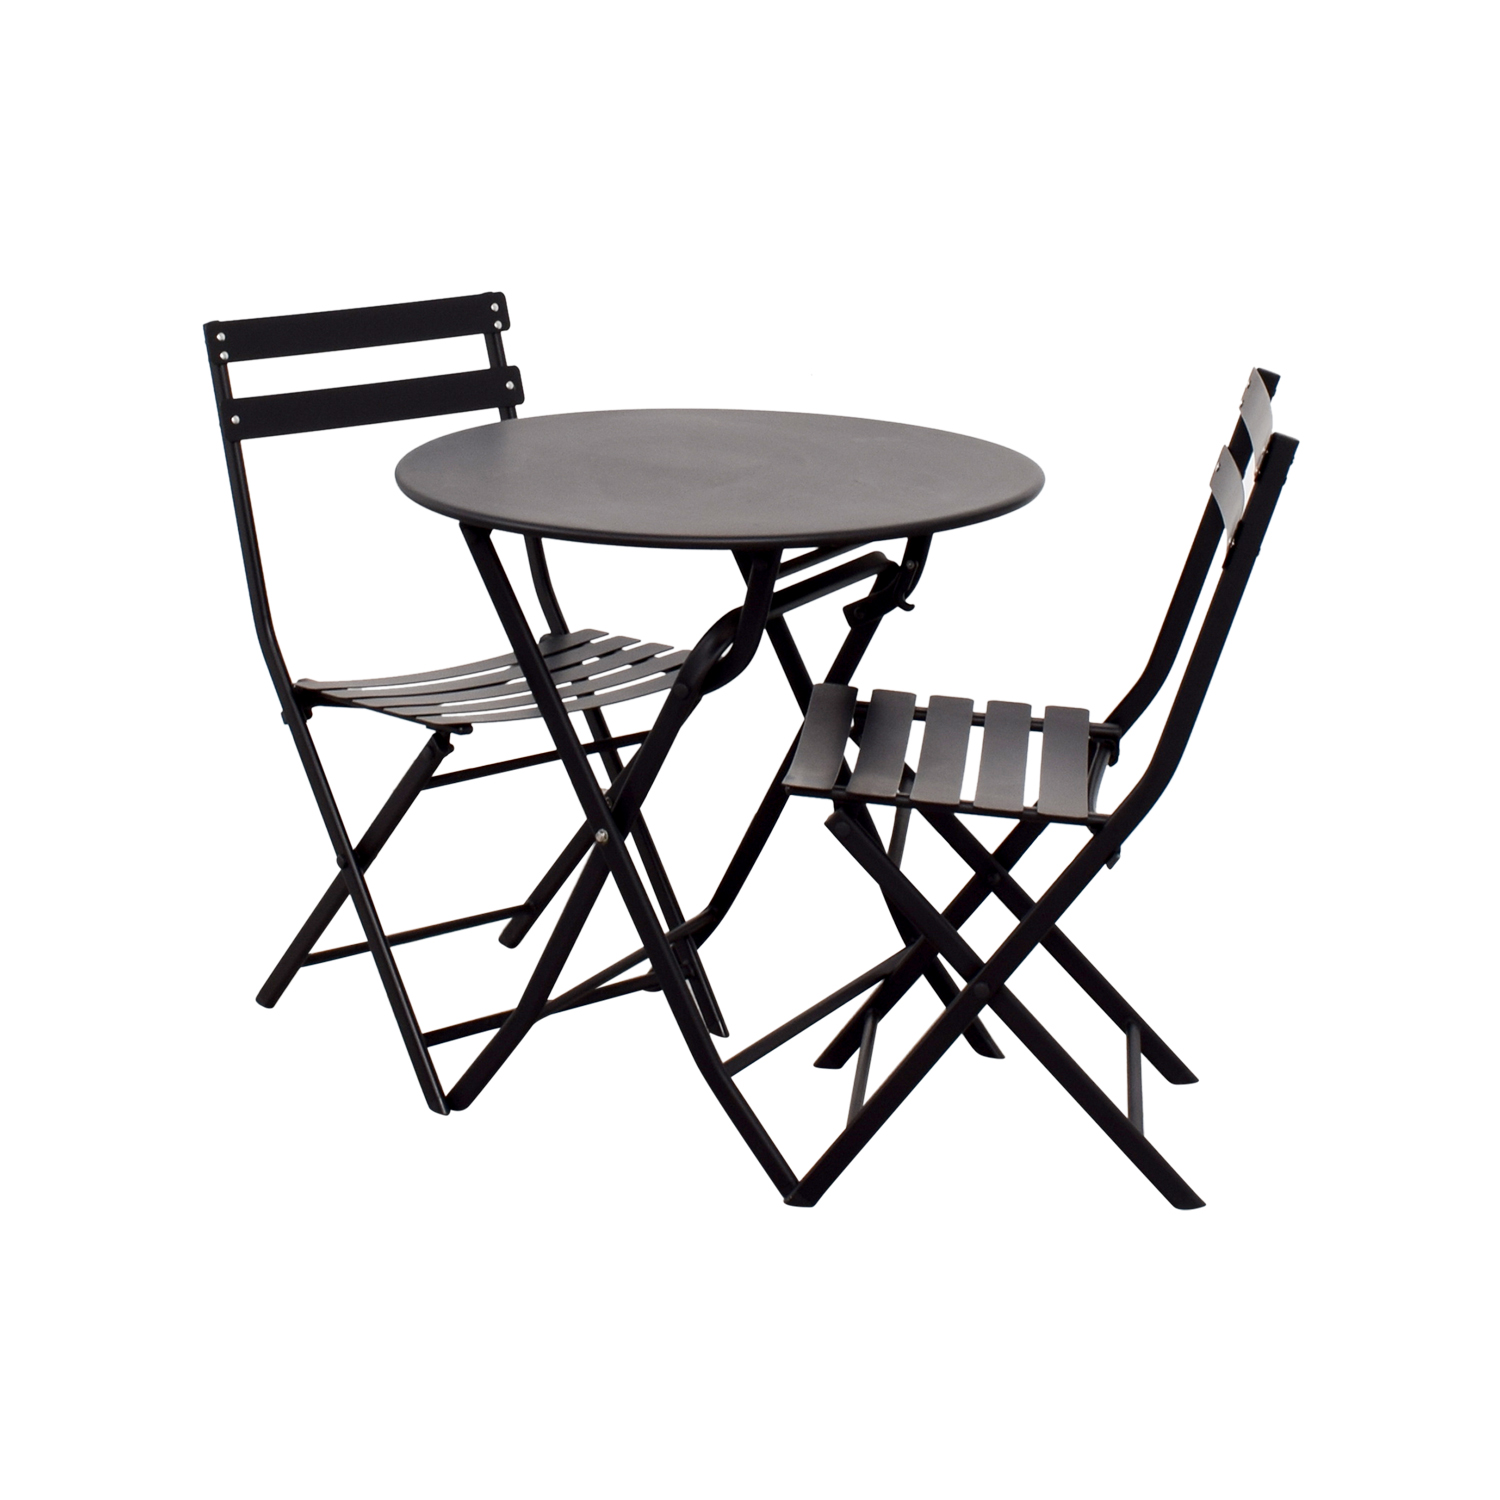 62 off patio table and chairs tables for Deck table and chairs